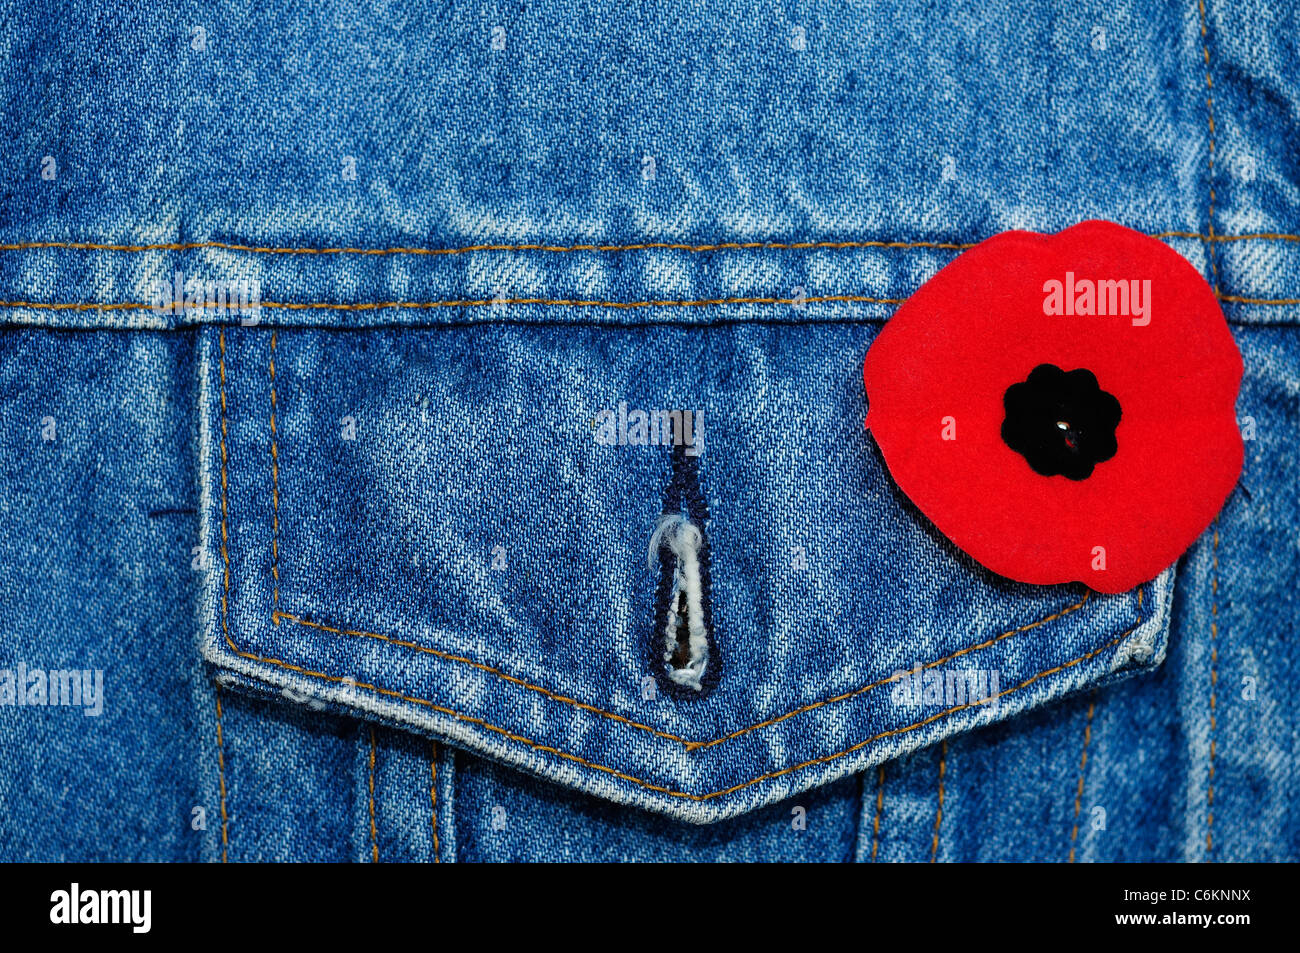 Remembrance Day Poppy Being Worn On A Denim Jacket - Stock Image